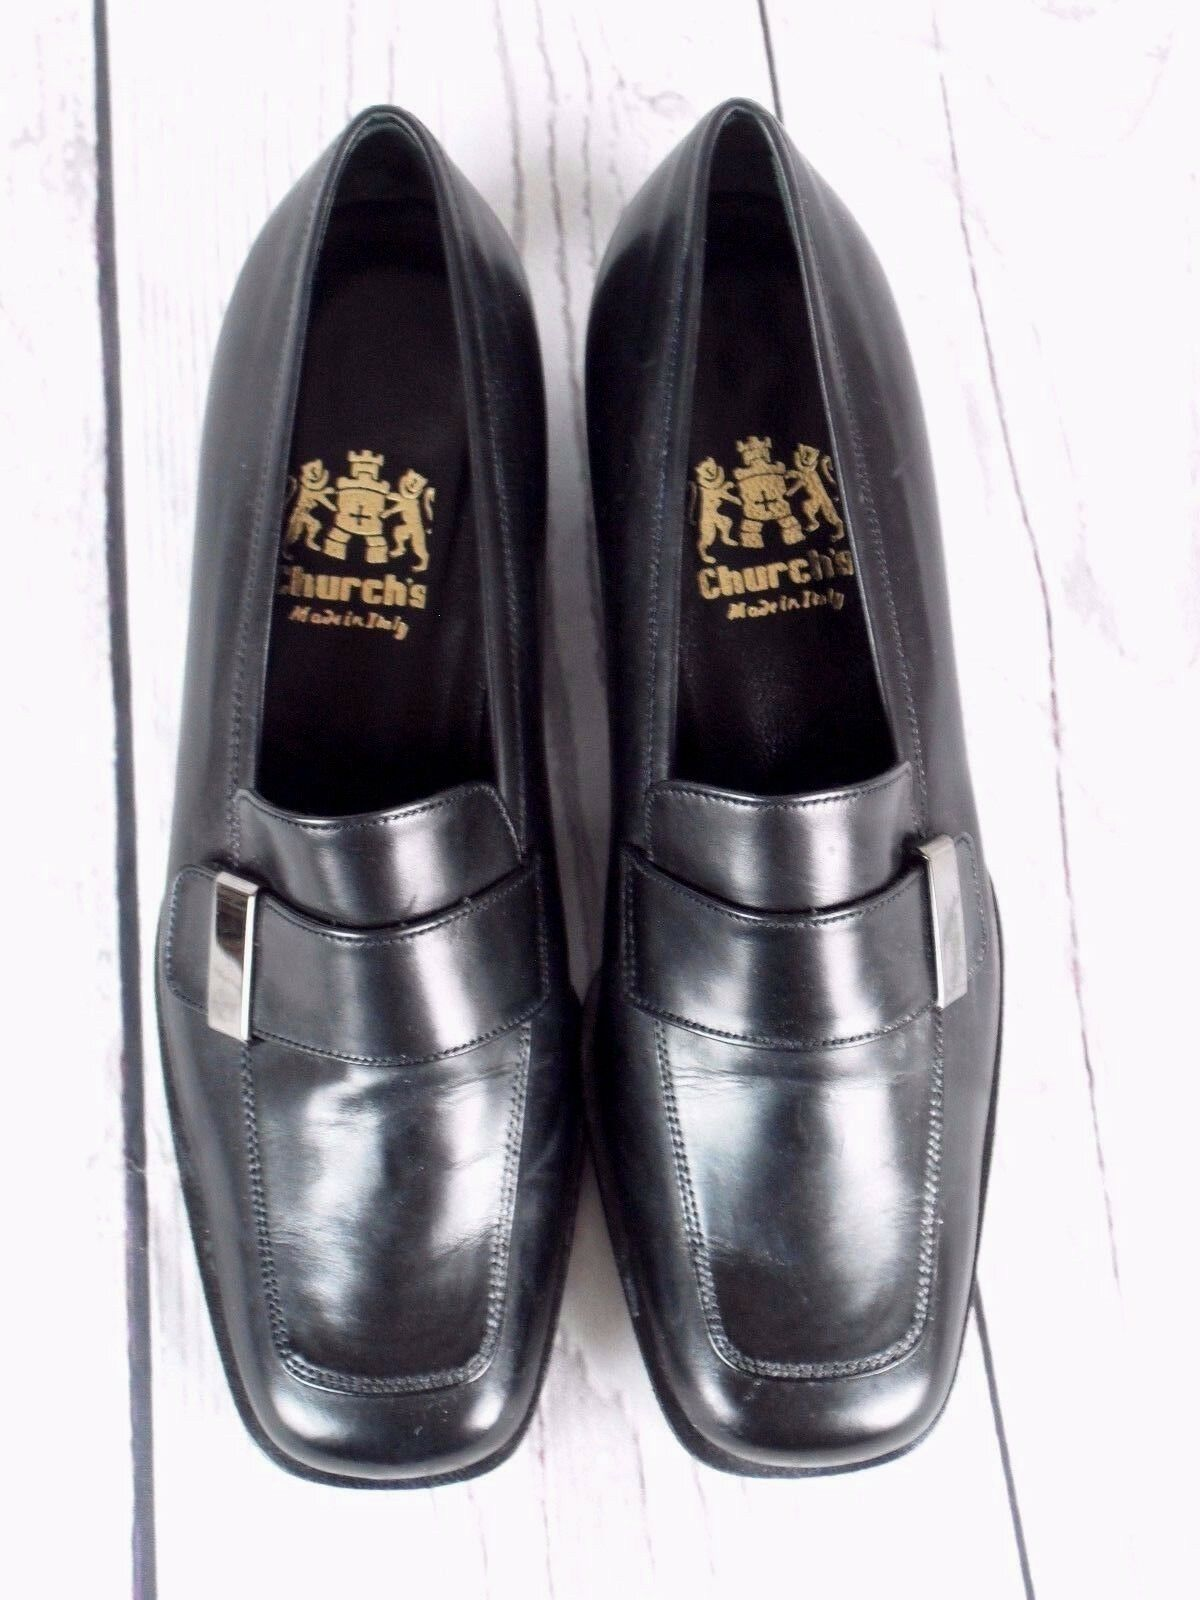 CHURCH'S BLACK LEATHER COURT Schuhe - UK SIZE IN 3, EU 36. MADE IN SIZE ITALY d3f753